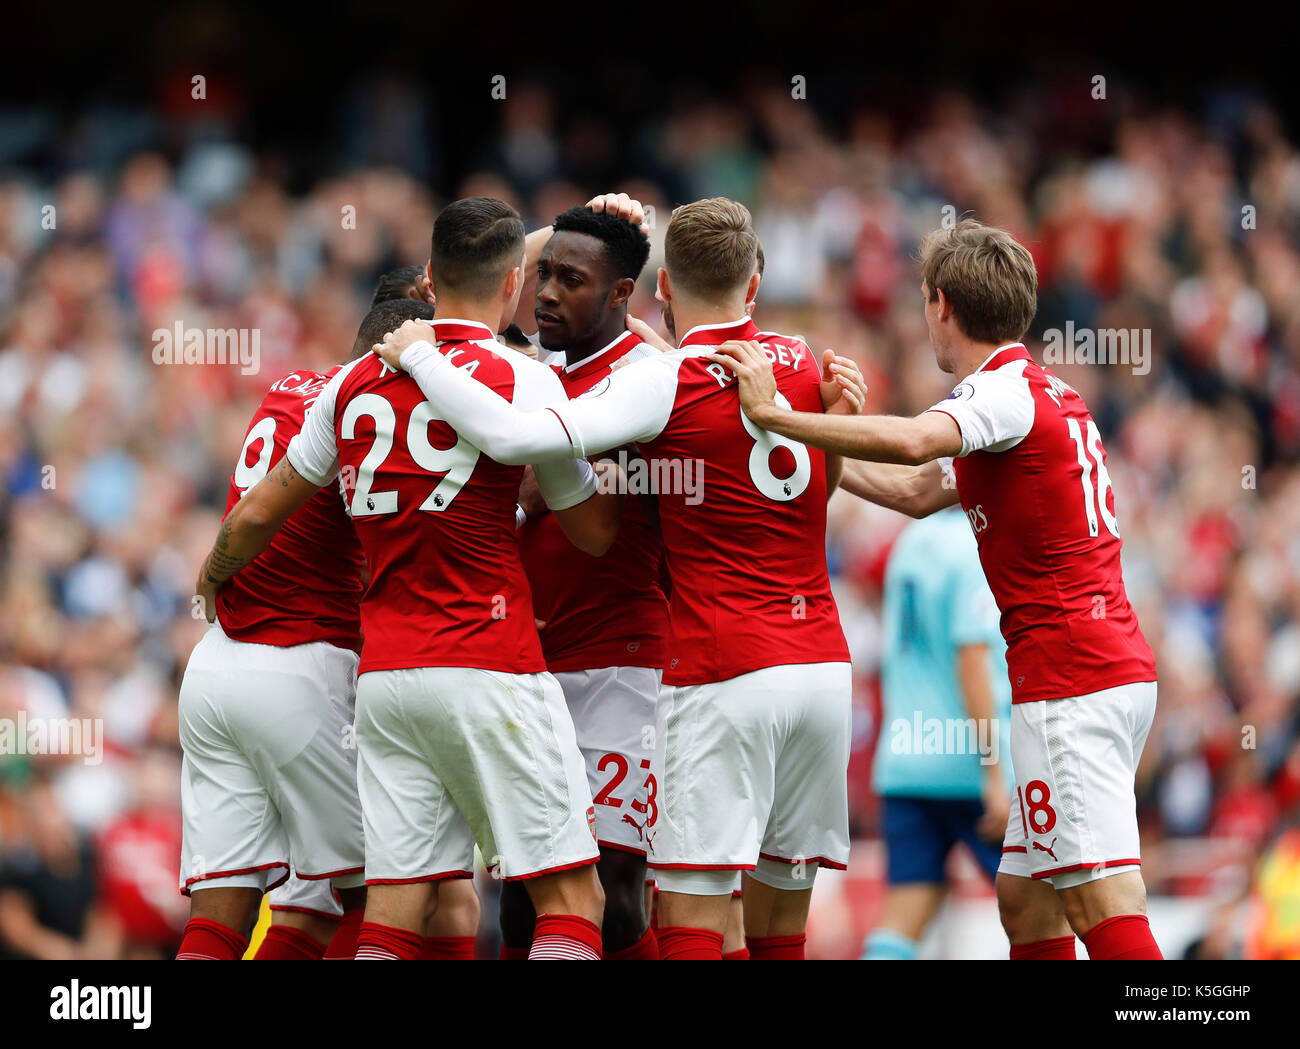 London, UK. 9th Sep, 2017. Players of Arsenal celebrate their first goal during the English Premier League match between Arsenal and Bournemouth at the Emirates Stadium in London, Britain on Sept. 9, 2017. Credit: Han Yan/Xinhua/Alamy Live News - Stock Image